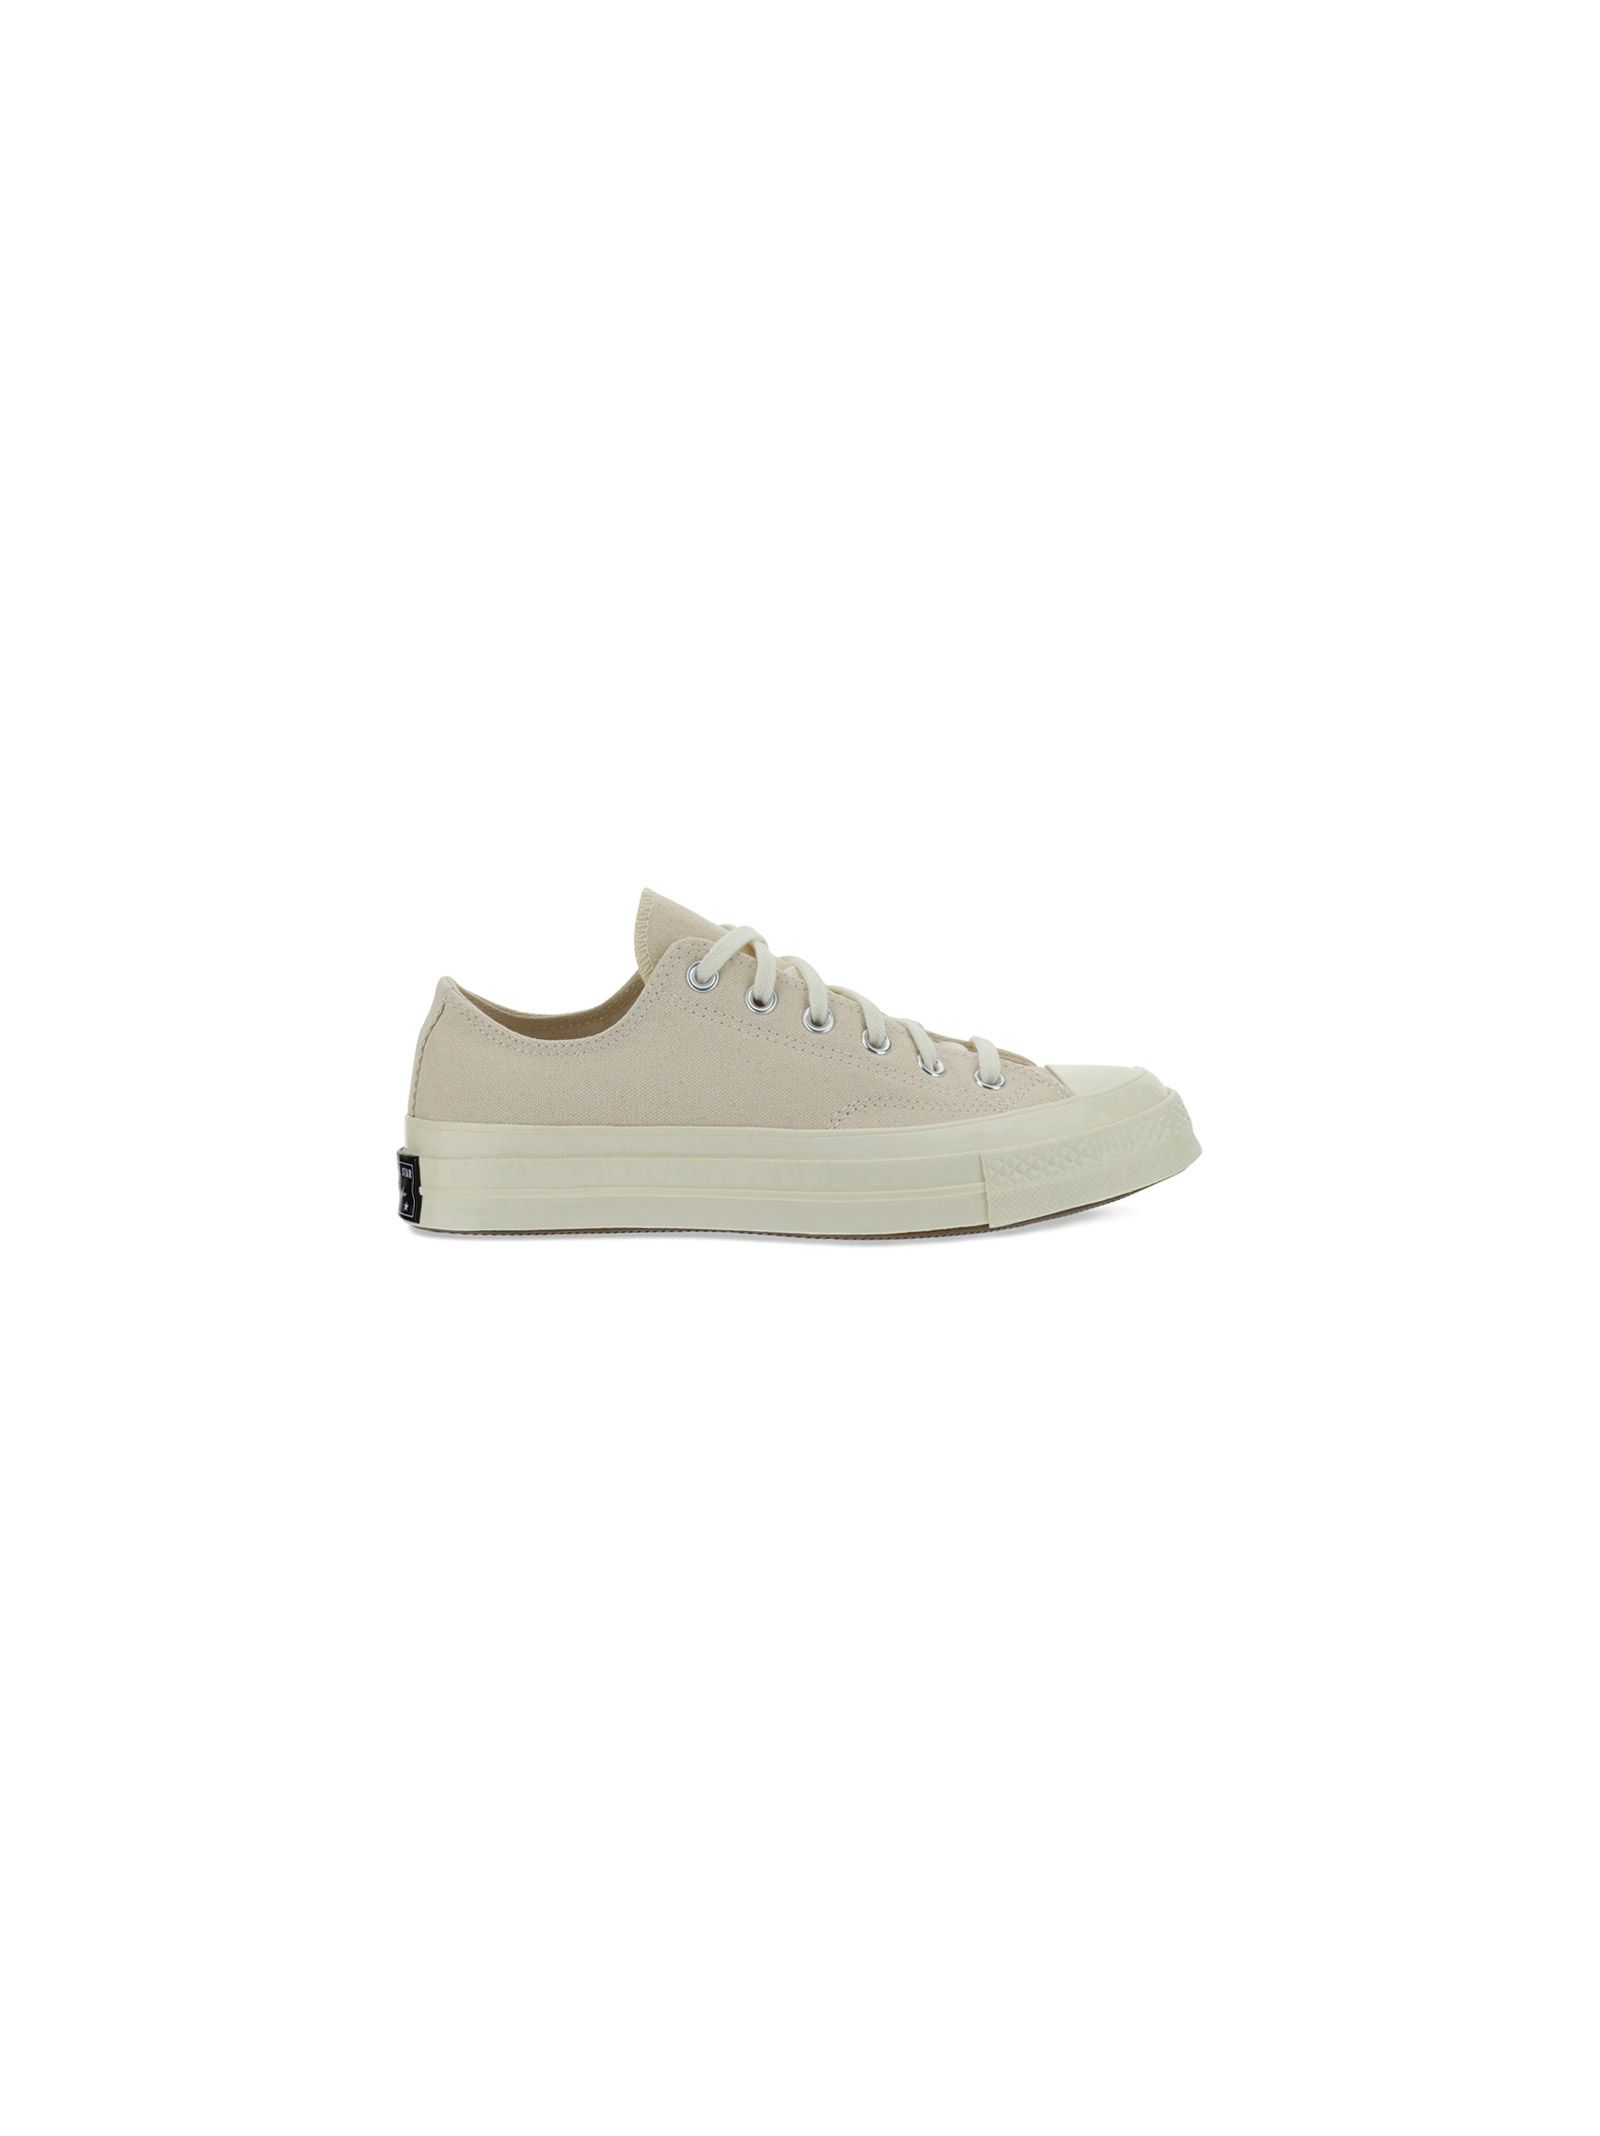 Converse CONVERSE MEN'S 162211C836 WHITE OTHER MATERIALS SNEAKERS